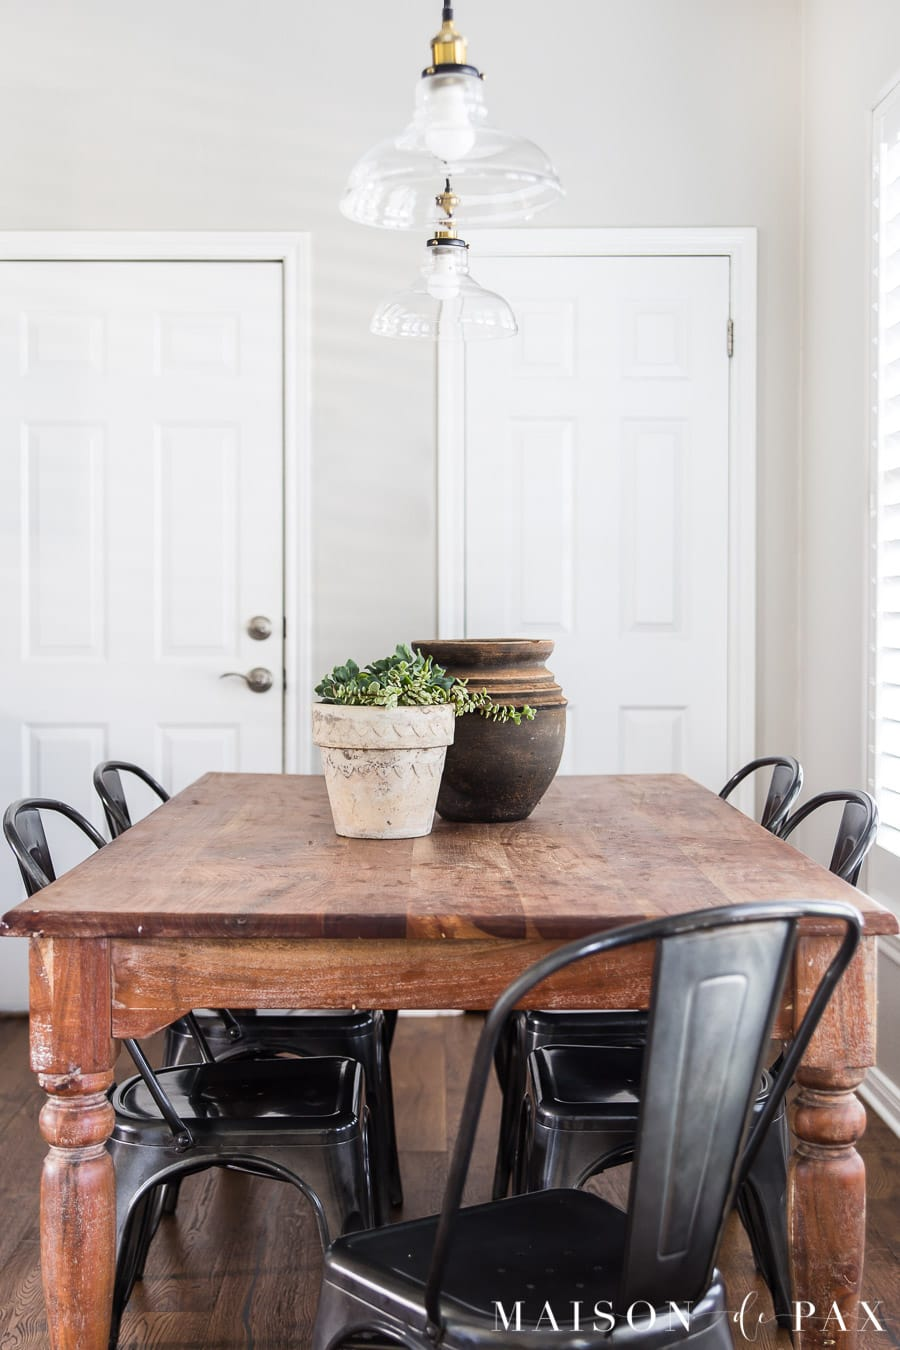 rustic wood dining table with turned legs and metal chairs | Maison de Pax